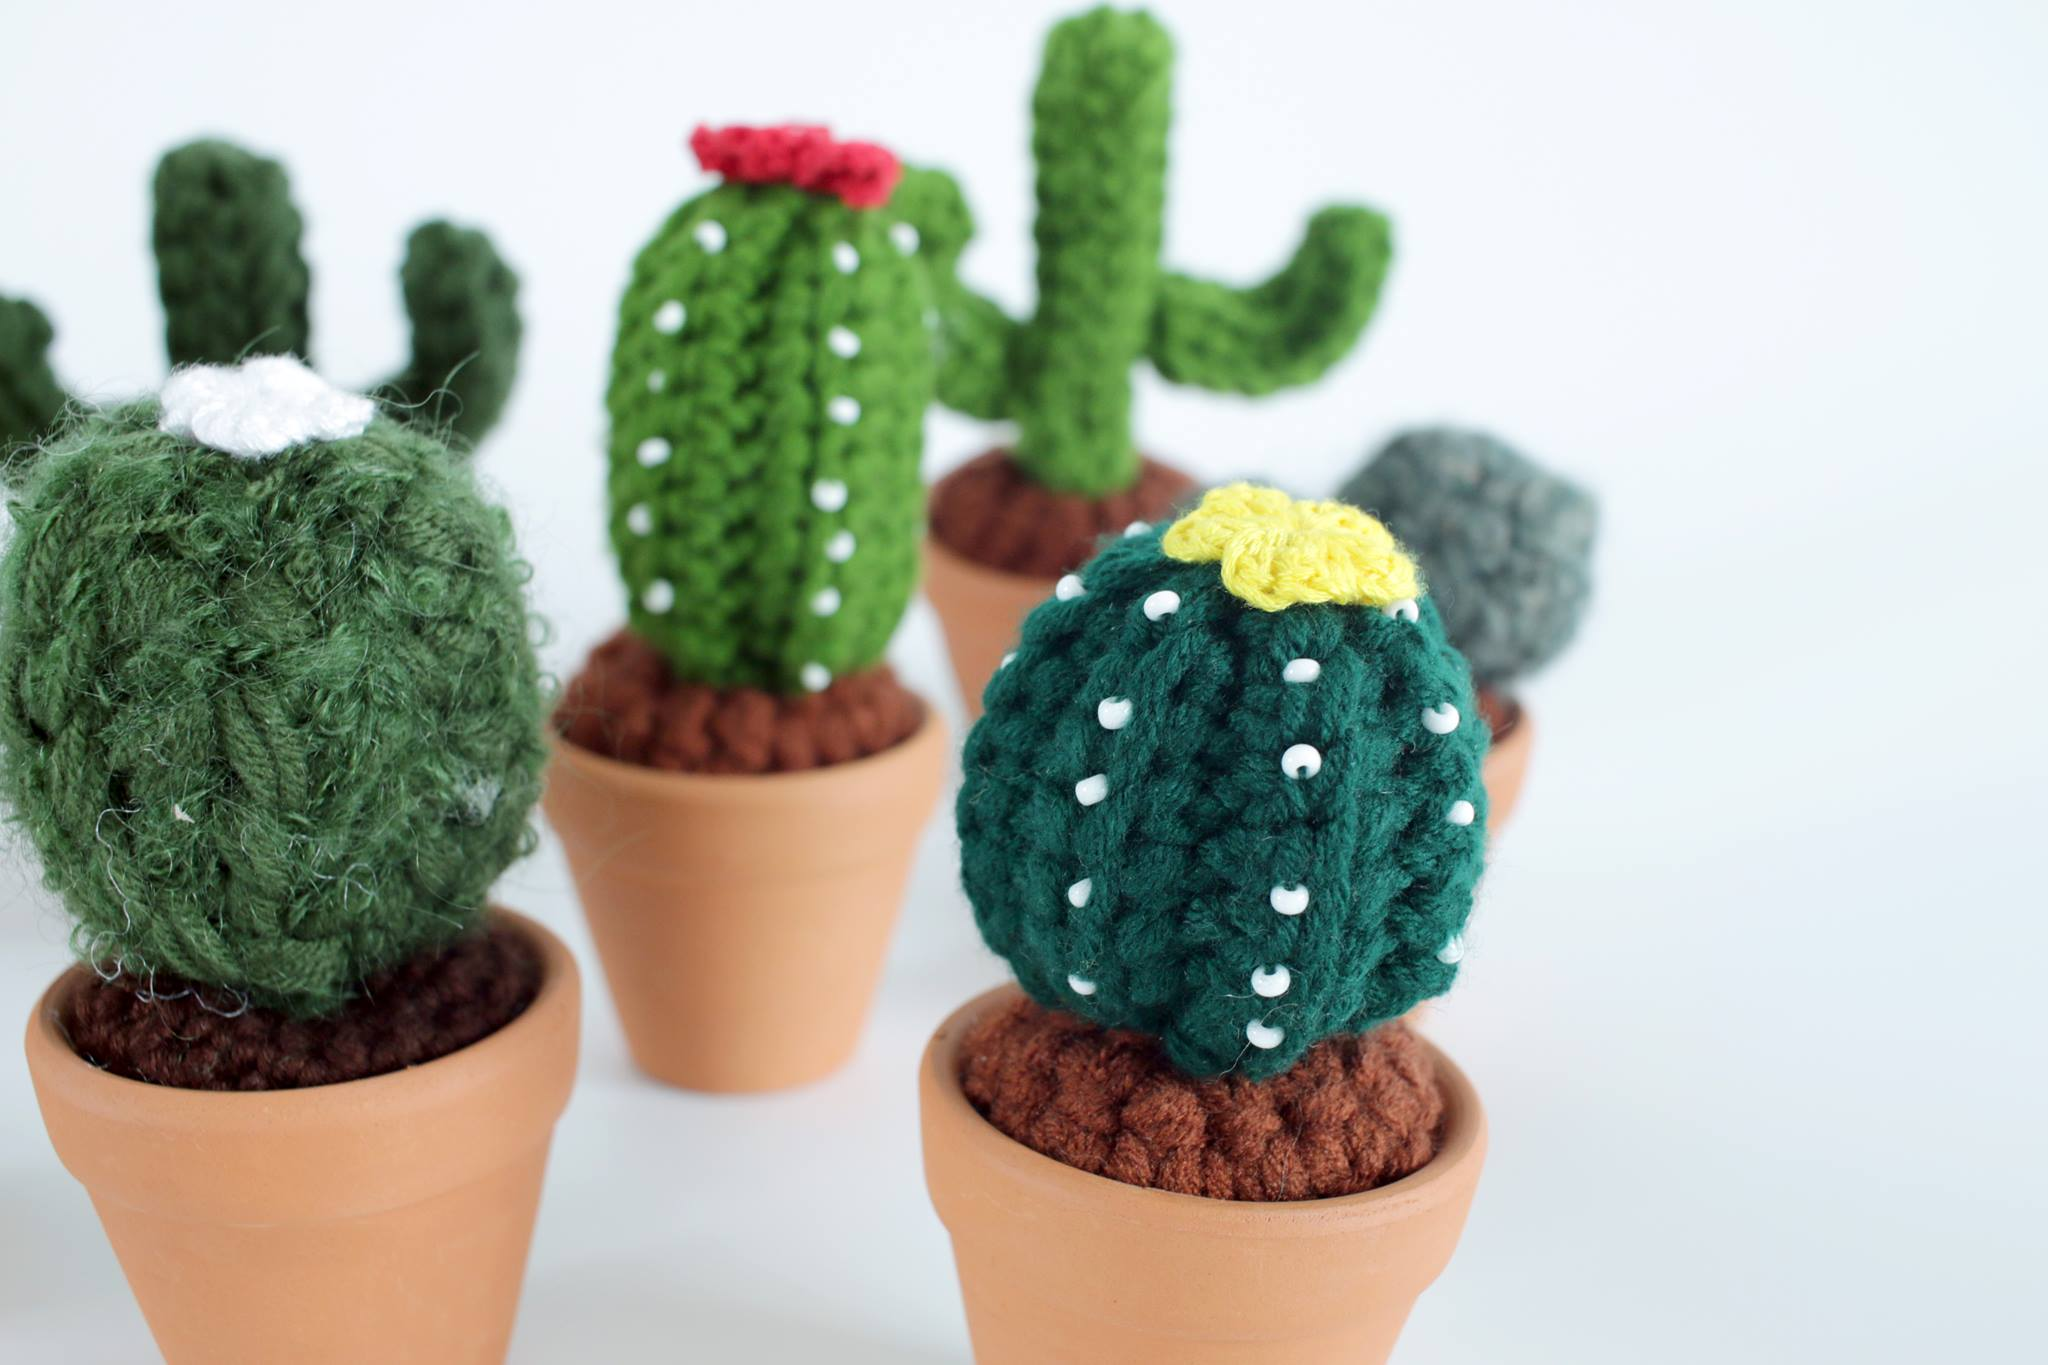 Crochet Cactus Workshop